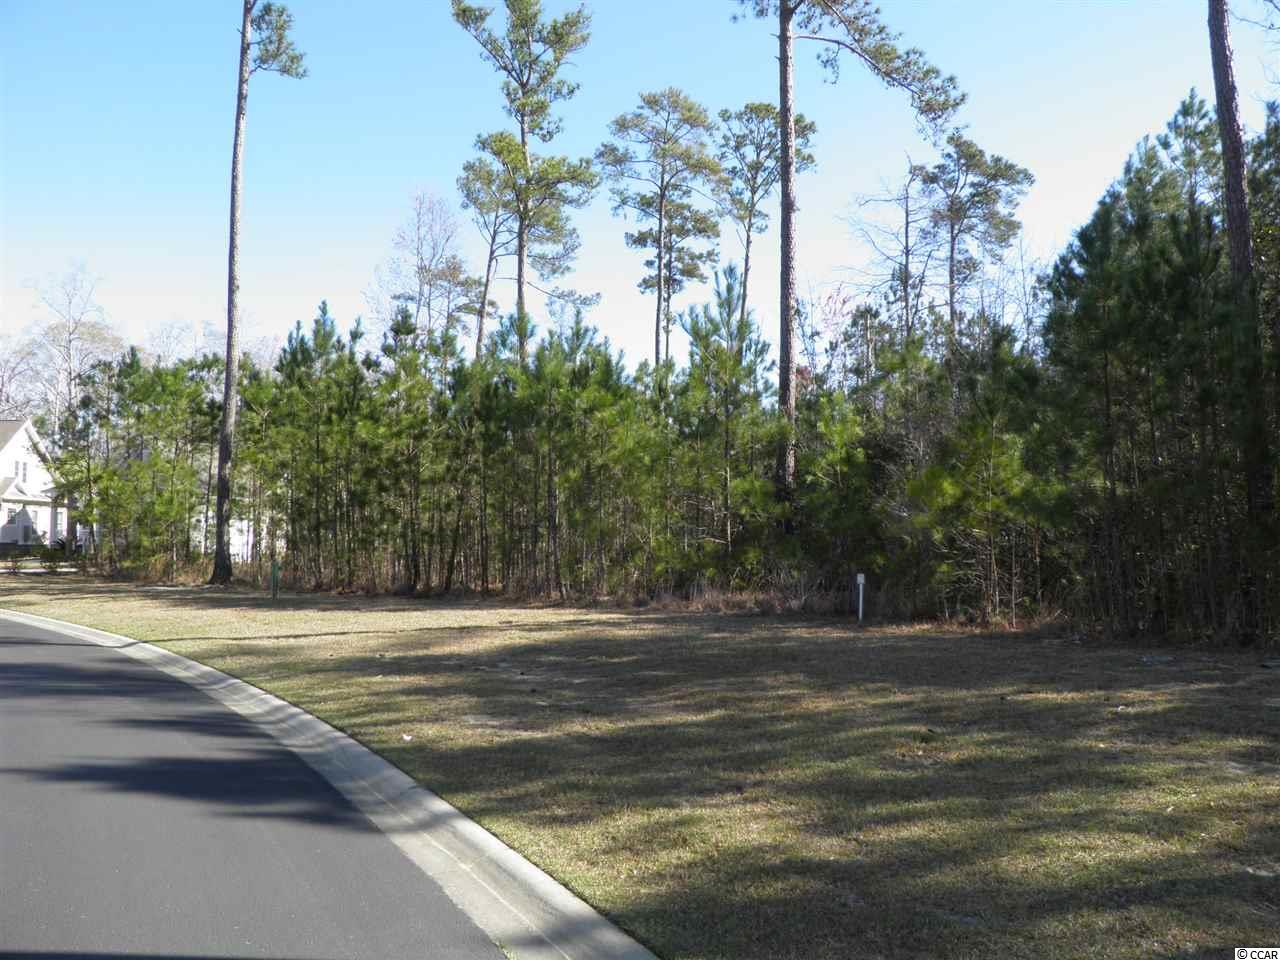 Home site is located in a custom neighborhood of the Bays of Prince Creek. A gated community in Murrells Inlet near TPC players golf course. The Bays community includes a ten acre amenity center with 2 pools, club house, lighted tennis, picnic area and more. Short drive to shopping and Murrells inlet restaurants for some of the best seafood our area has to offer. No time frame to build and you can pick your own builder.